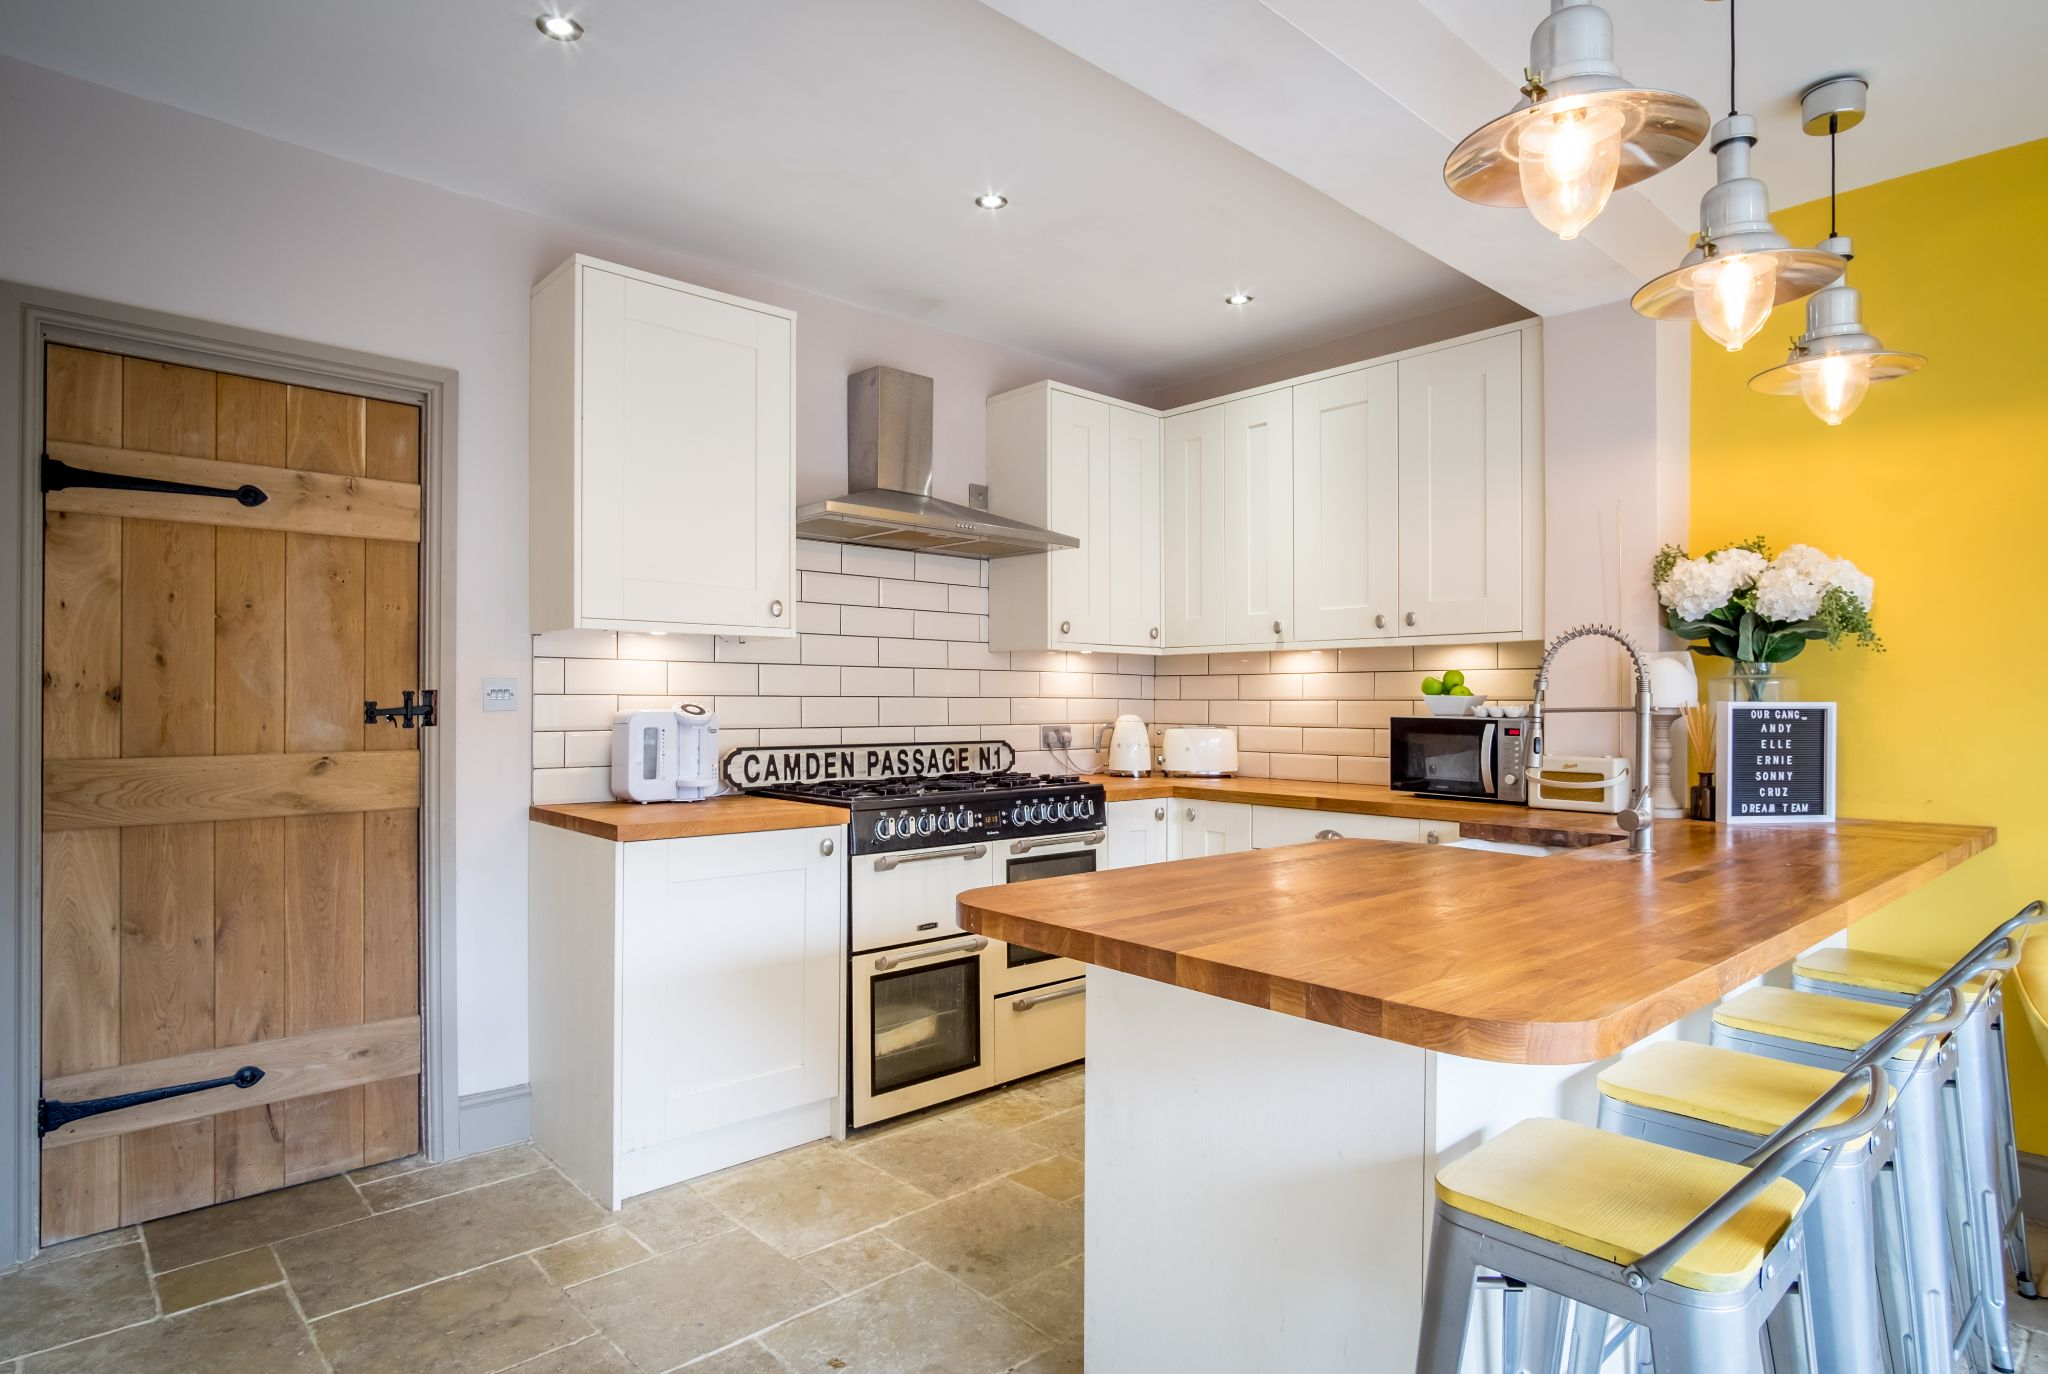 3 bedroom mid terraced house For Sale in Halifax - Kitchen with the breakfast bar